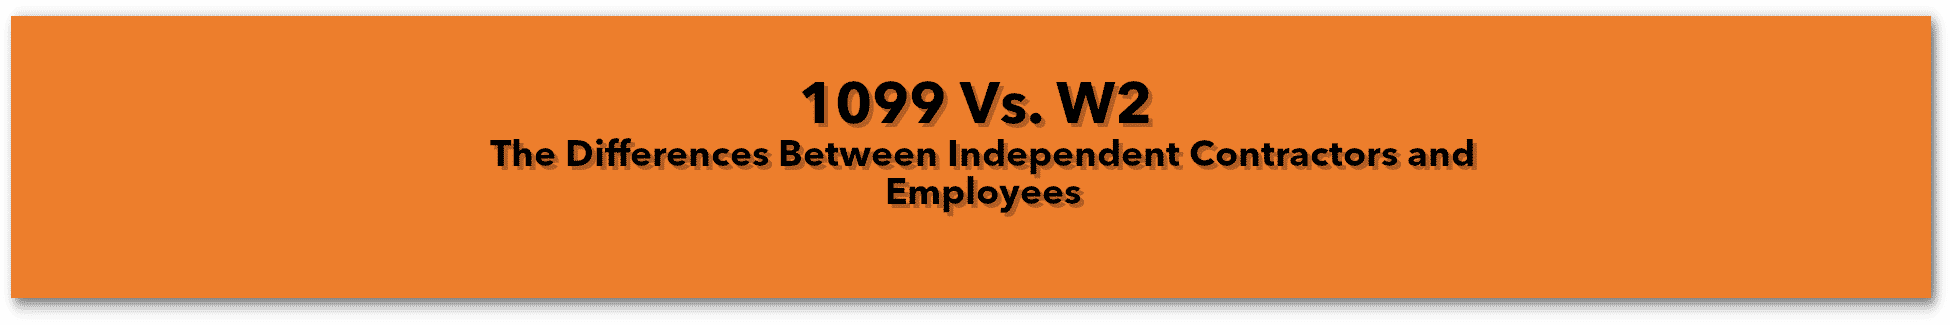 1099 Vs. W2 [The Differences Between Independent Contractors and Employees]